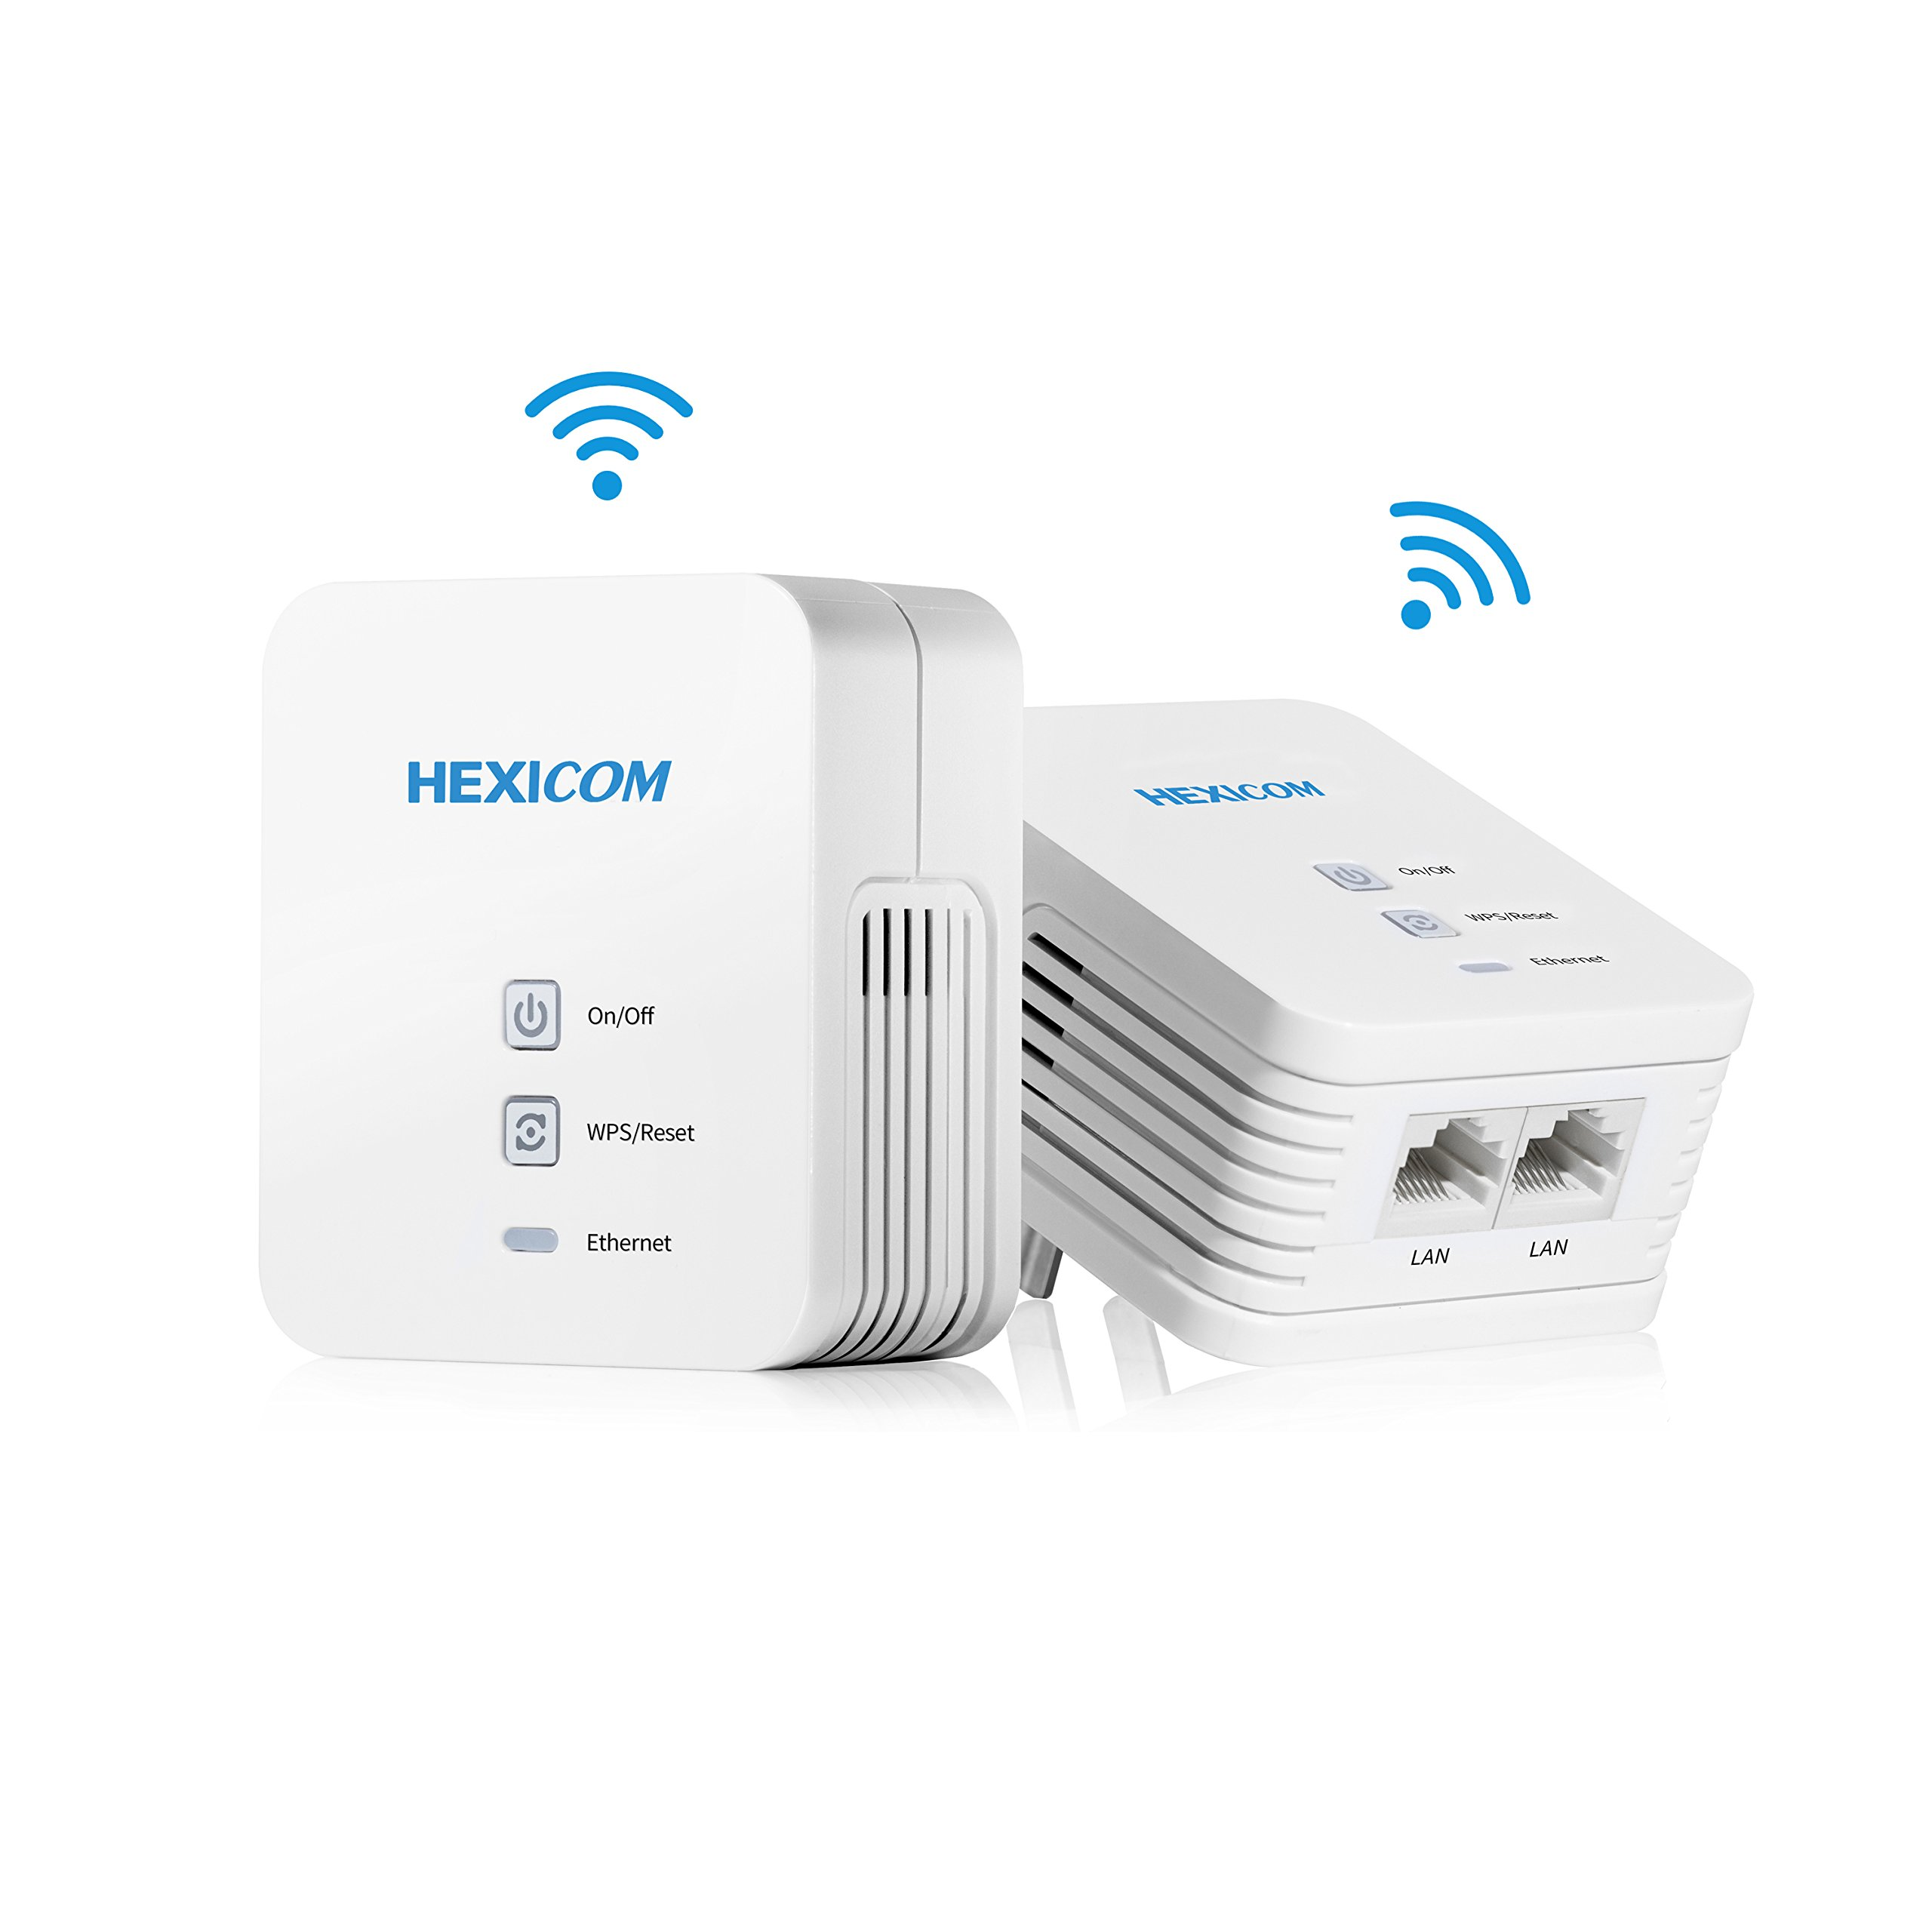 HEXICOM Av 200 Mbps Powerline Ethernet Adapter Wifi Kit Homeplug Bridge PLC 2 LAN Ports(HM200W/HS200W)